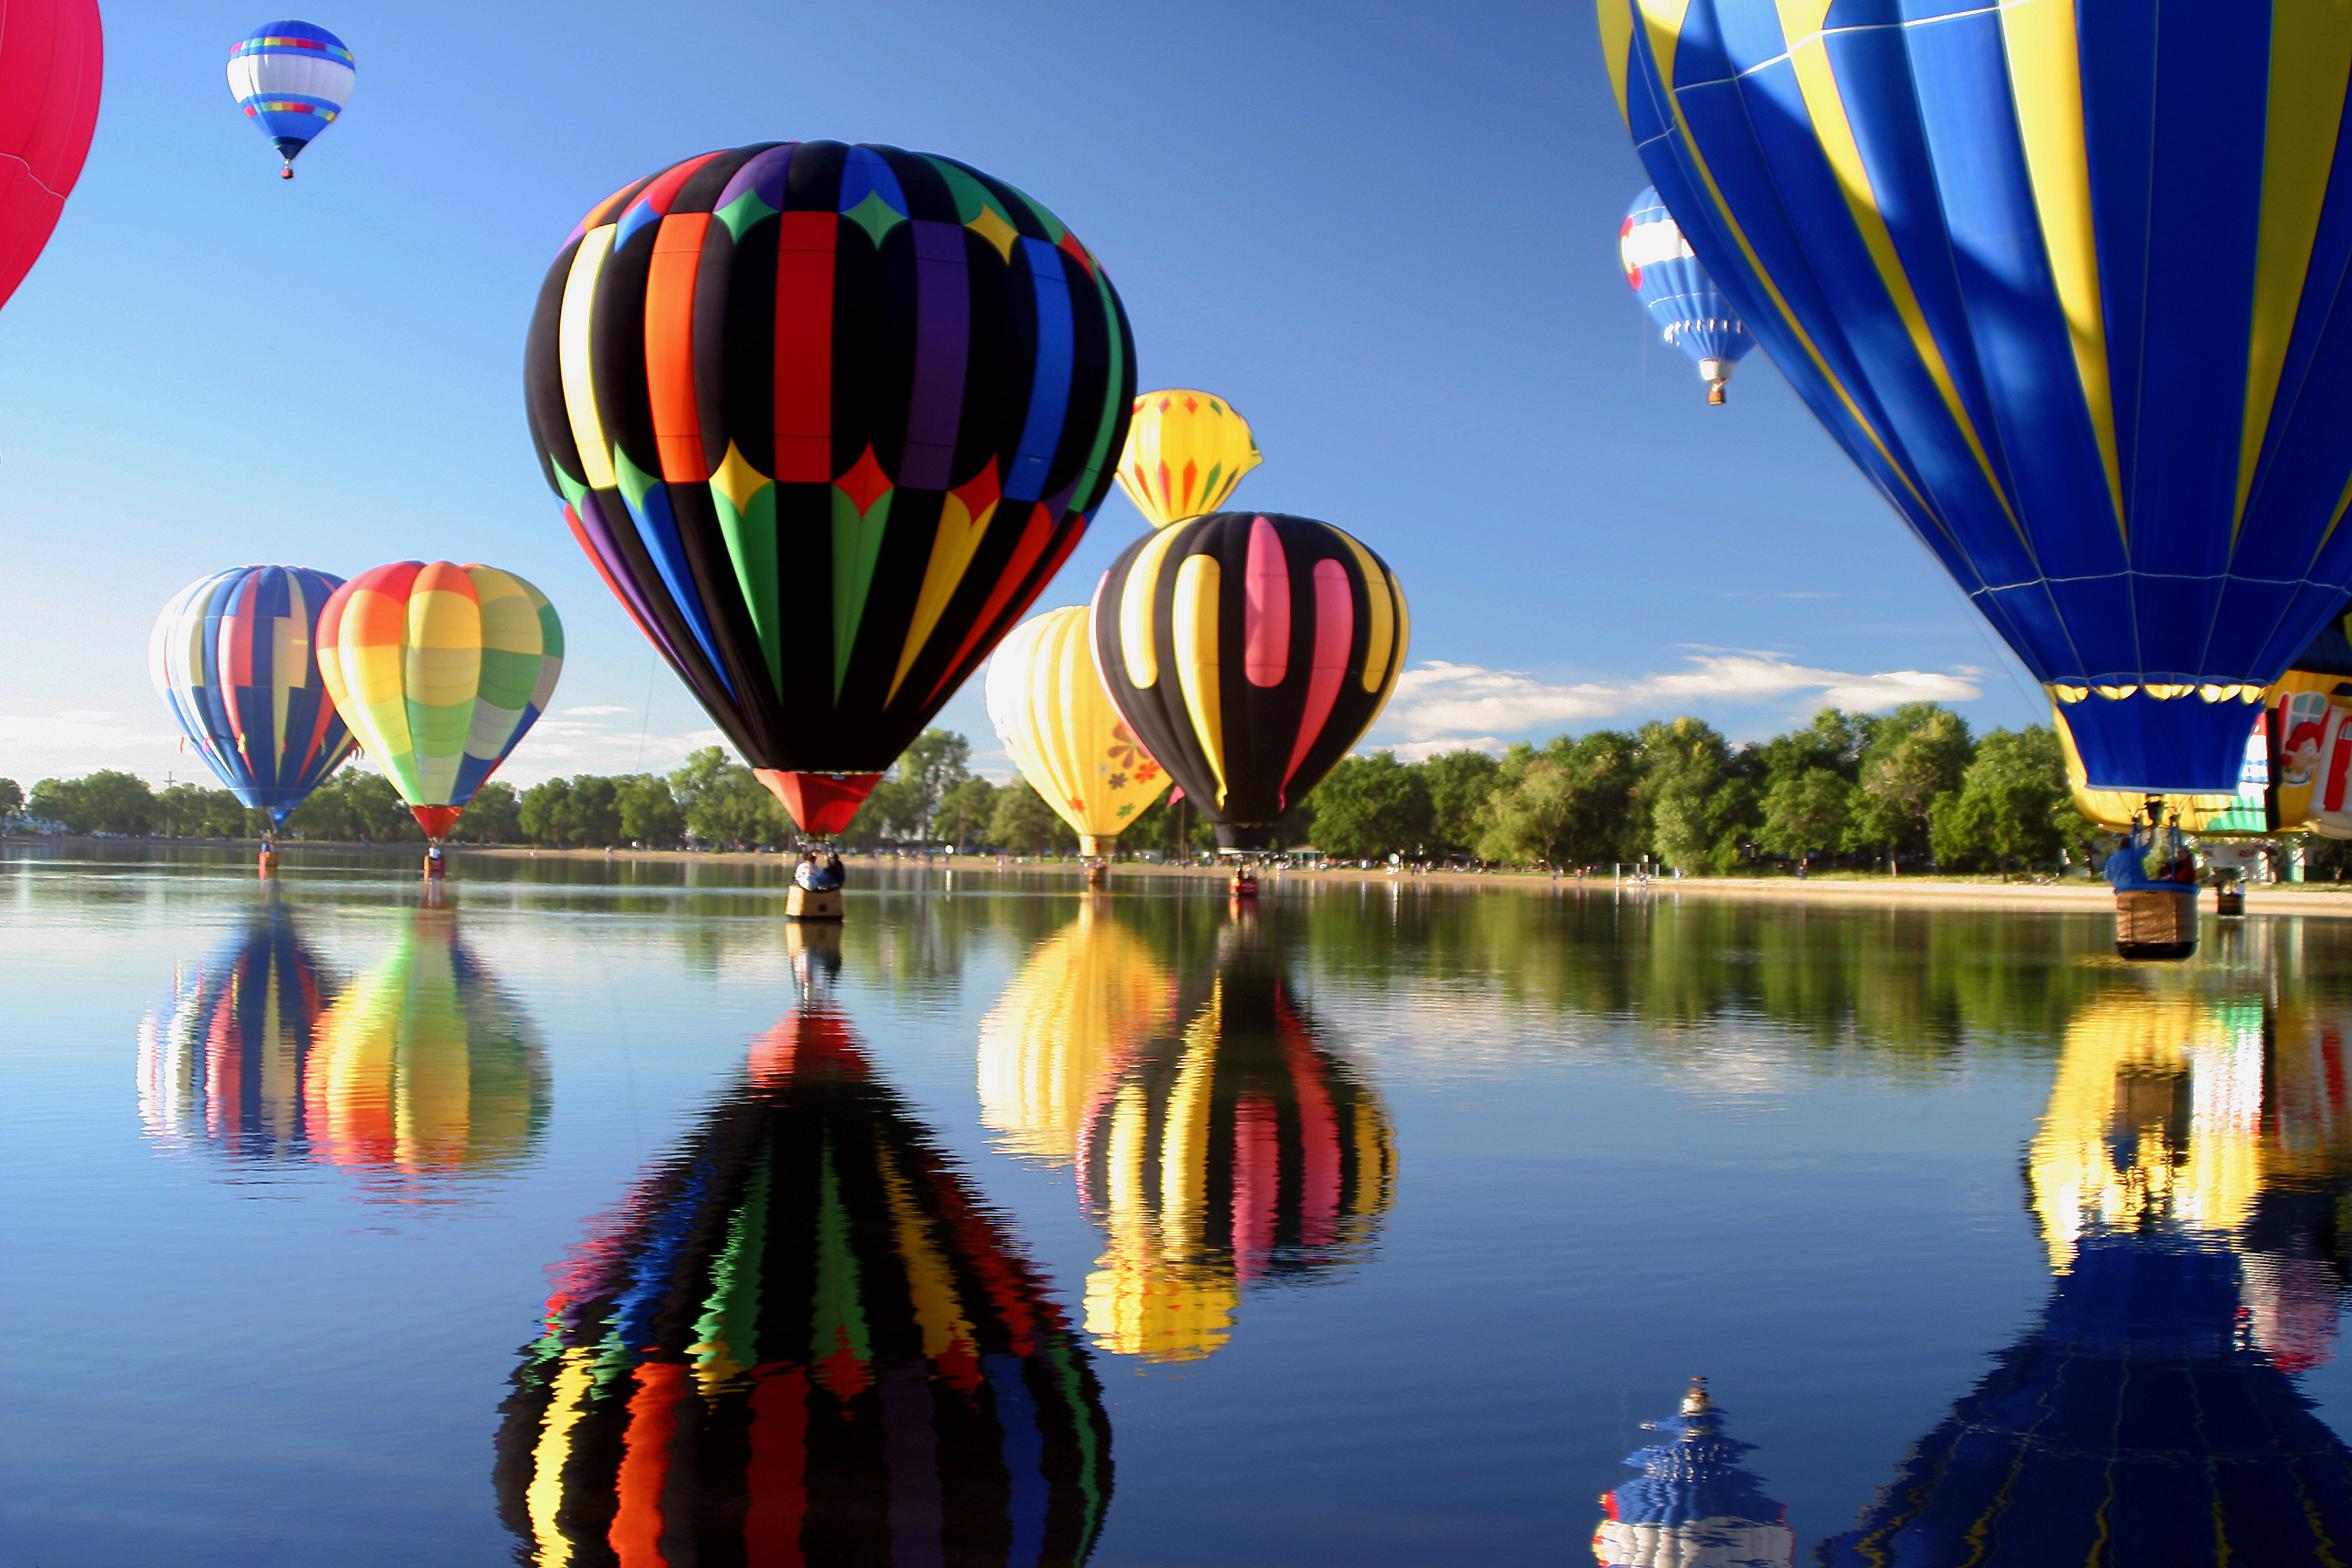 The High-Flying Origin of Hot Air Balloons